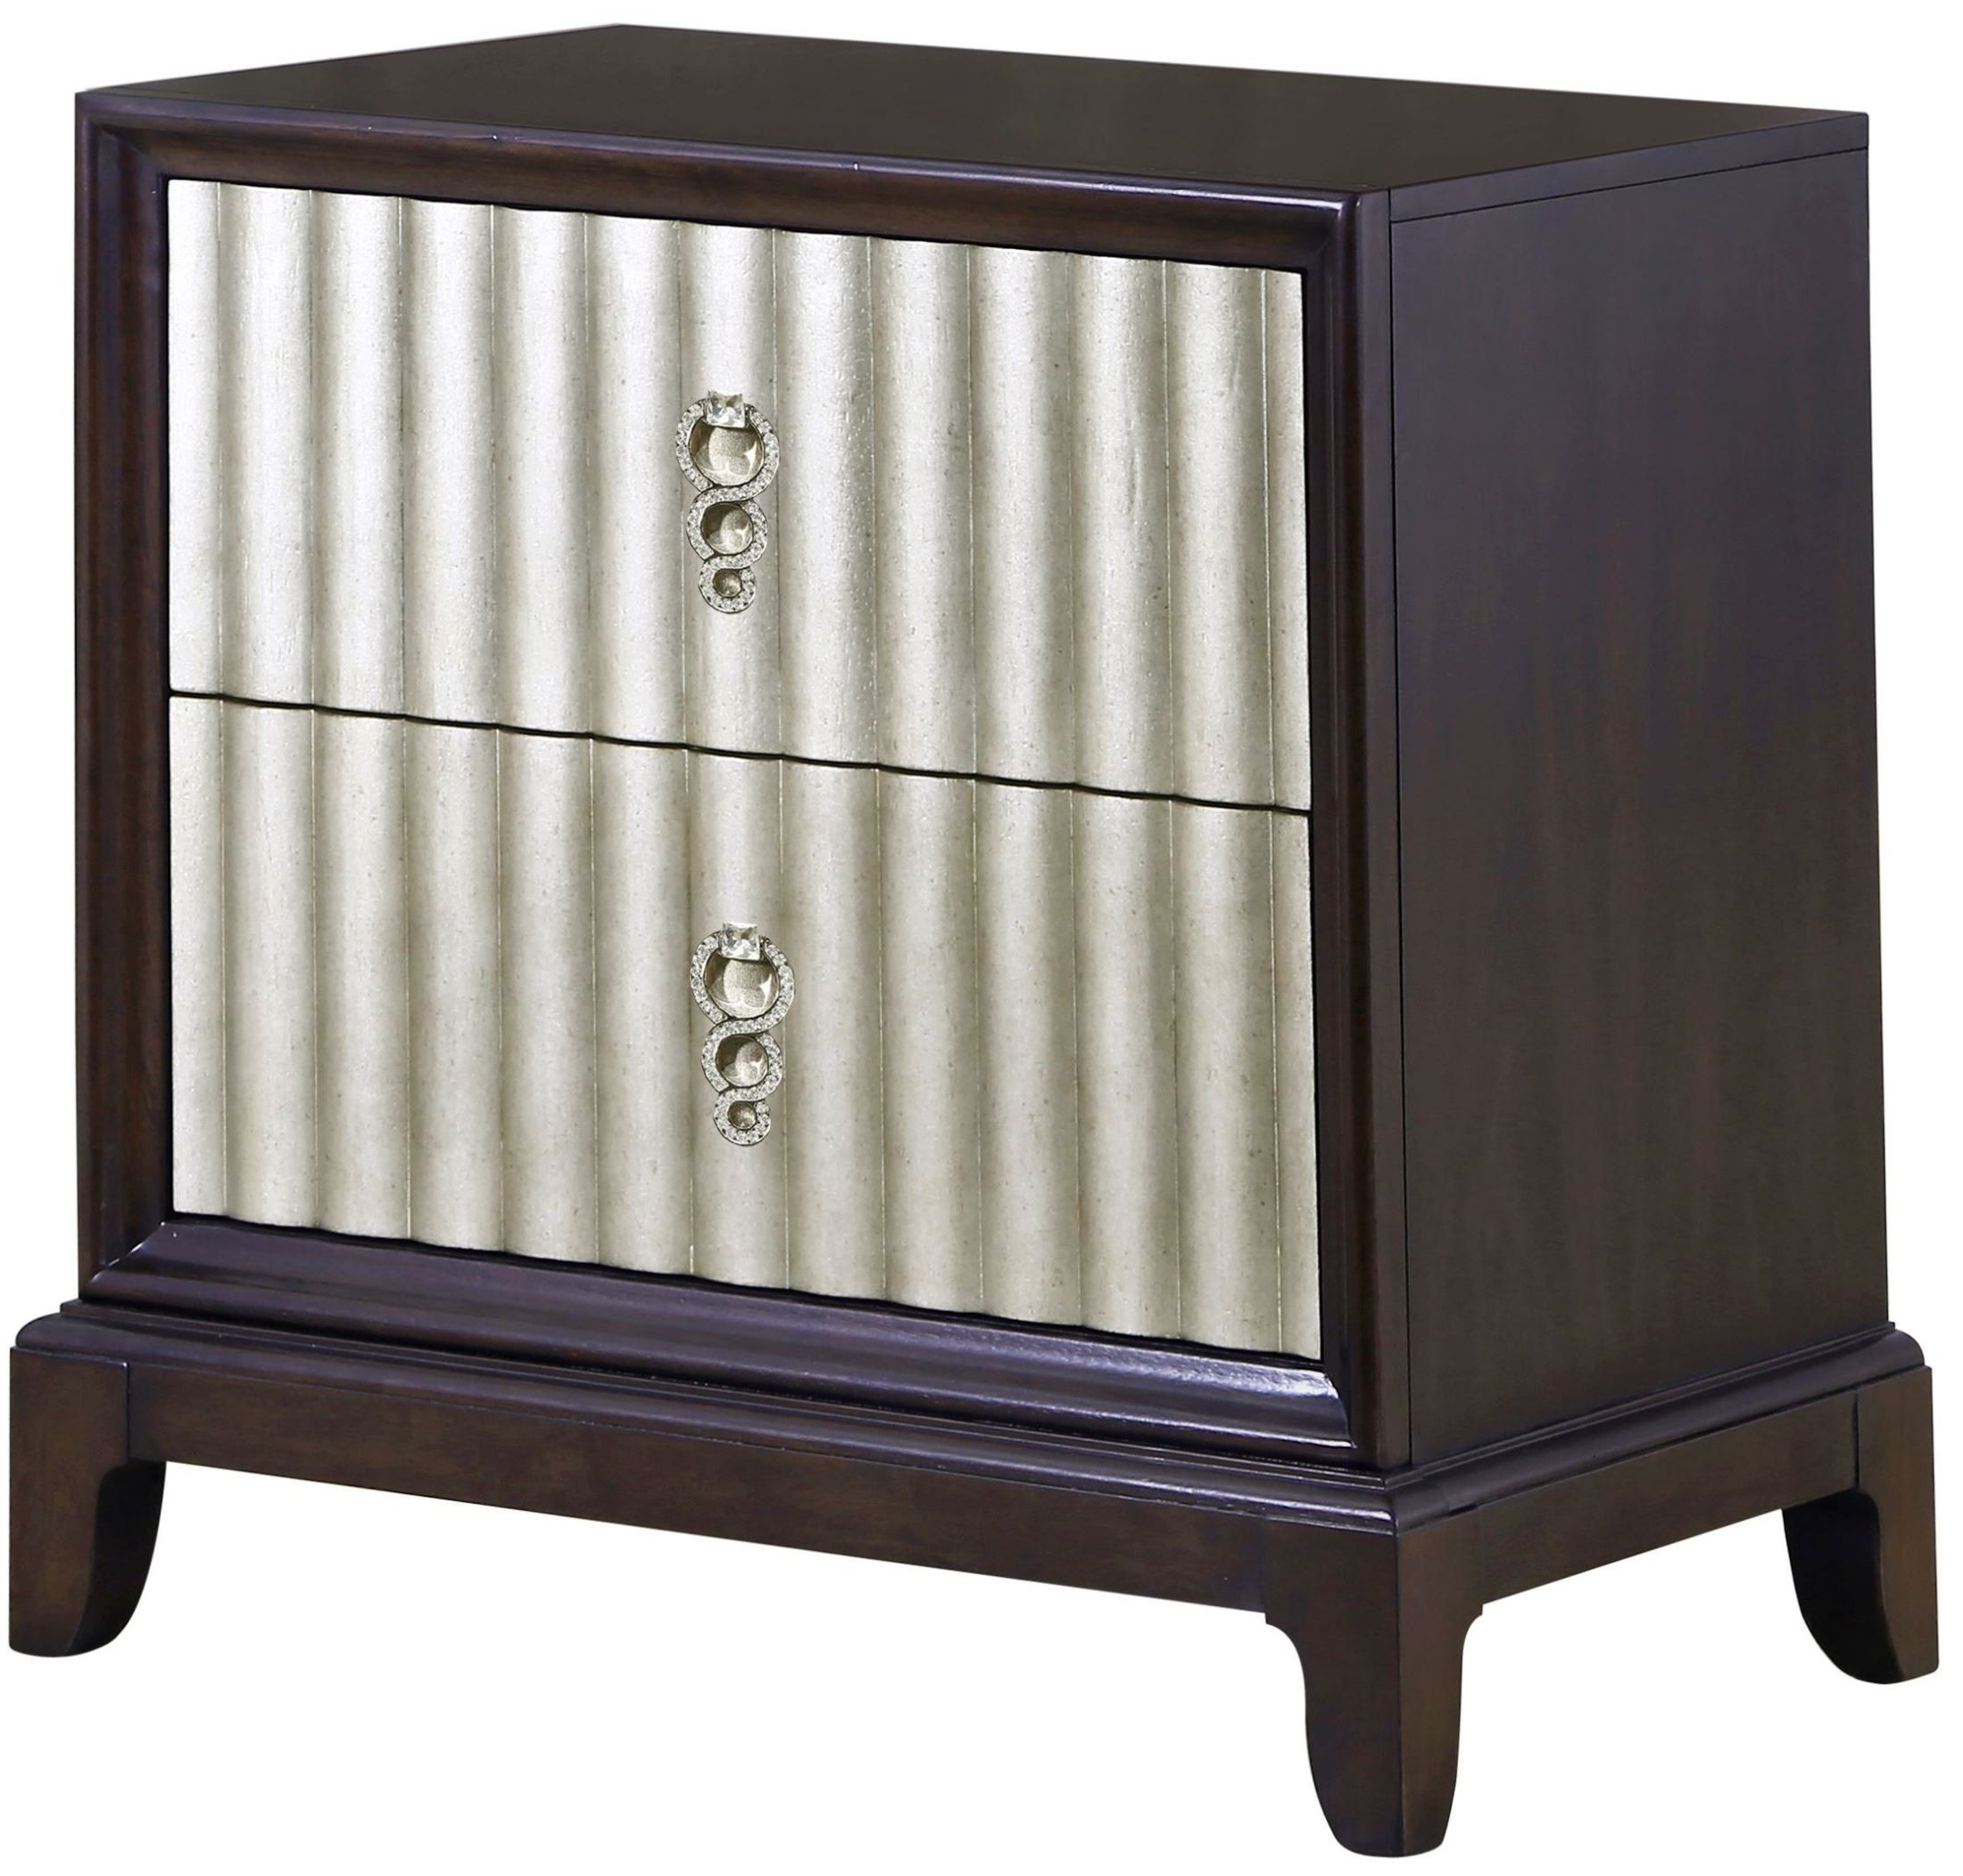 Gramercy Sable Wood Drawer Nightstand From Magnussen Home B3564 01 Coleman Furniture